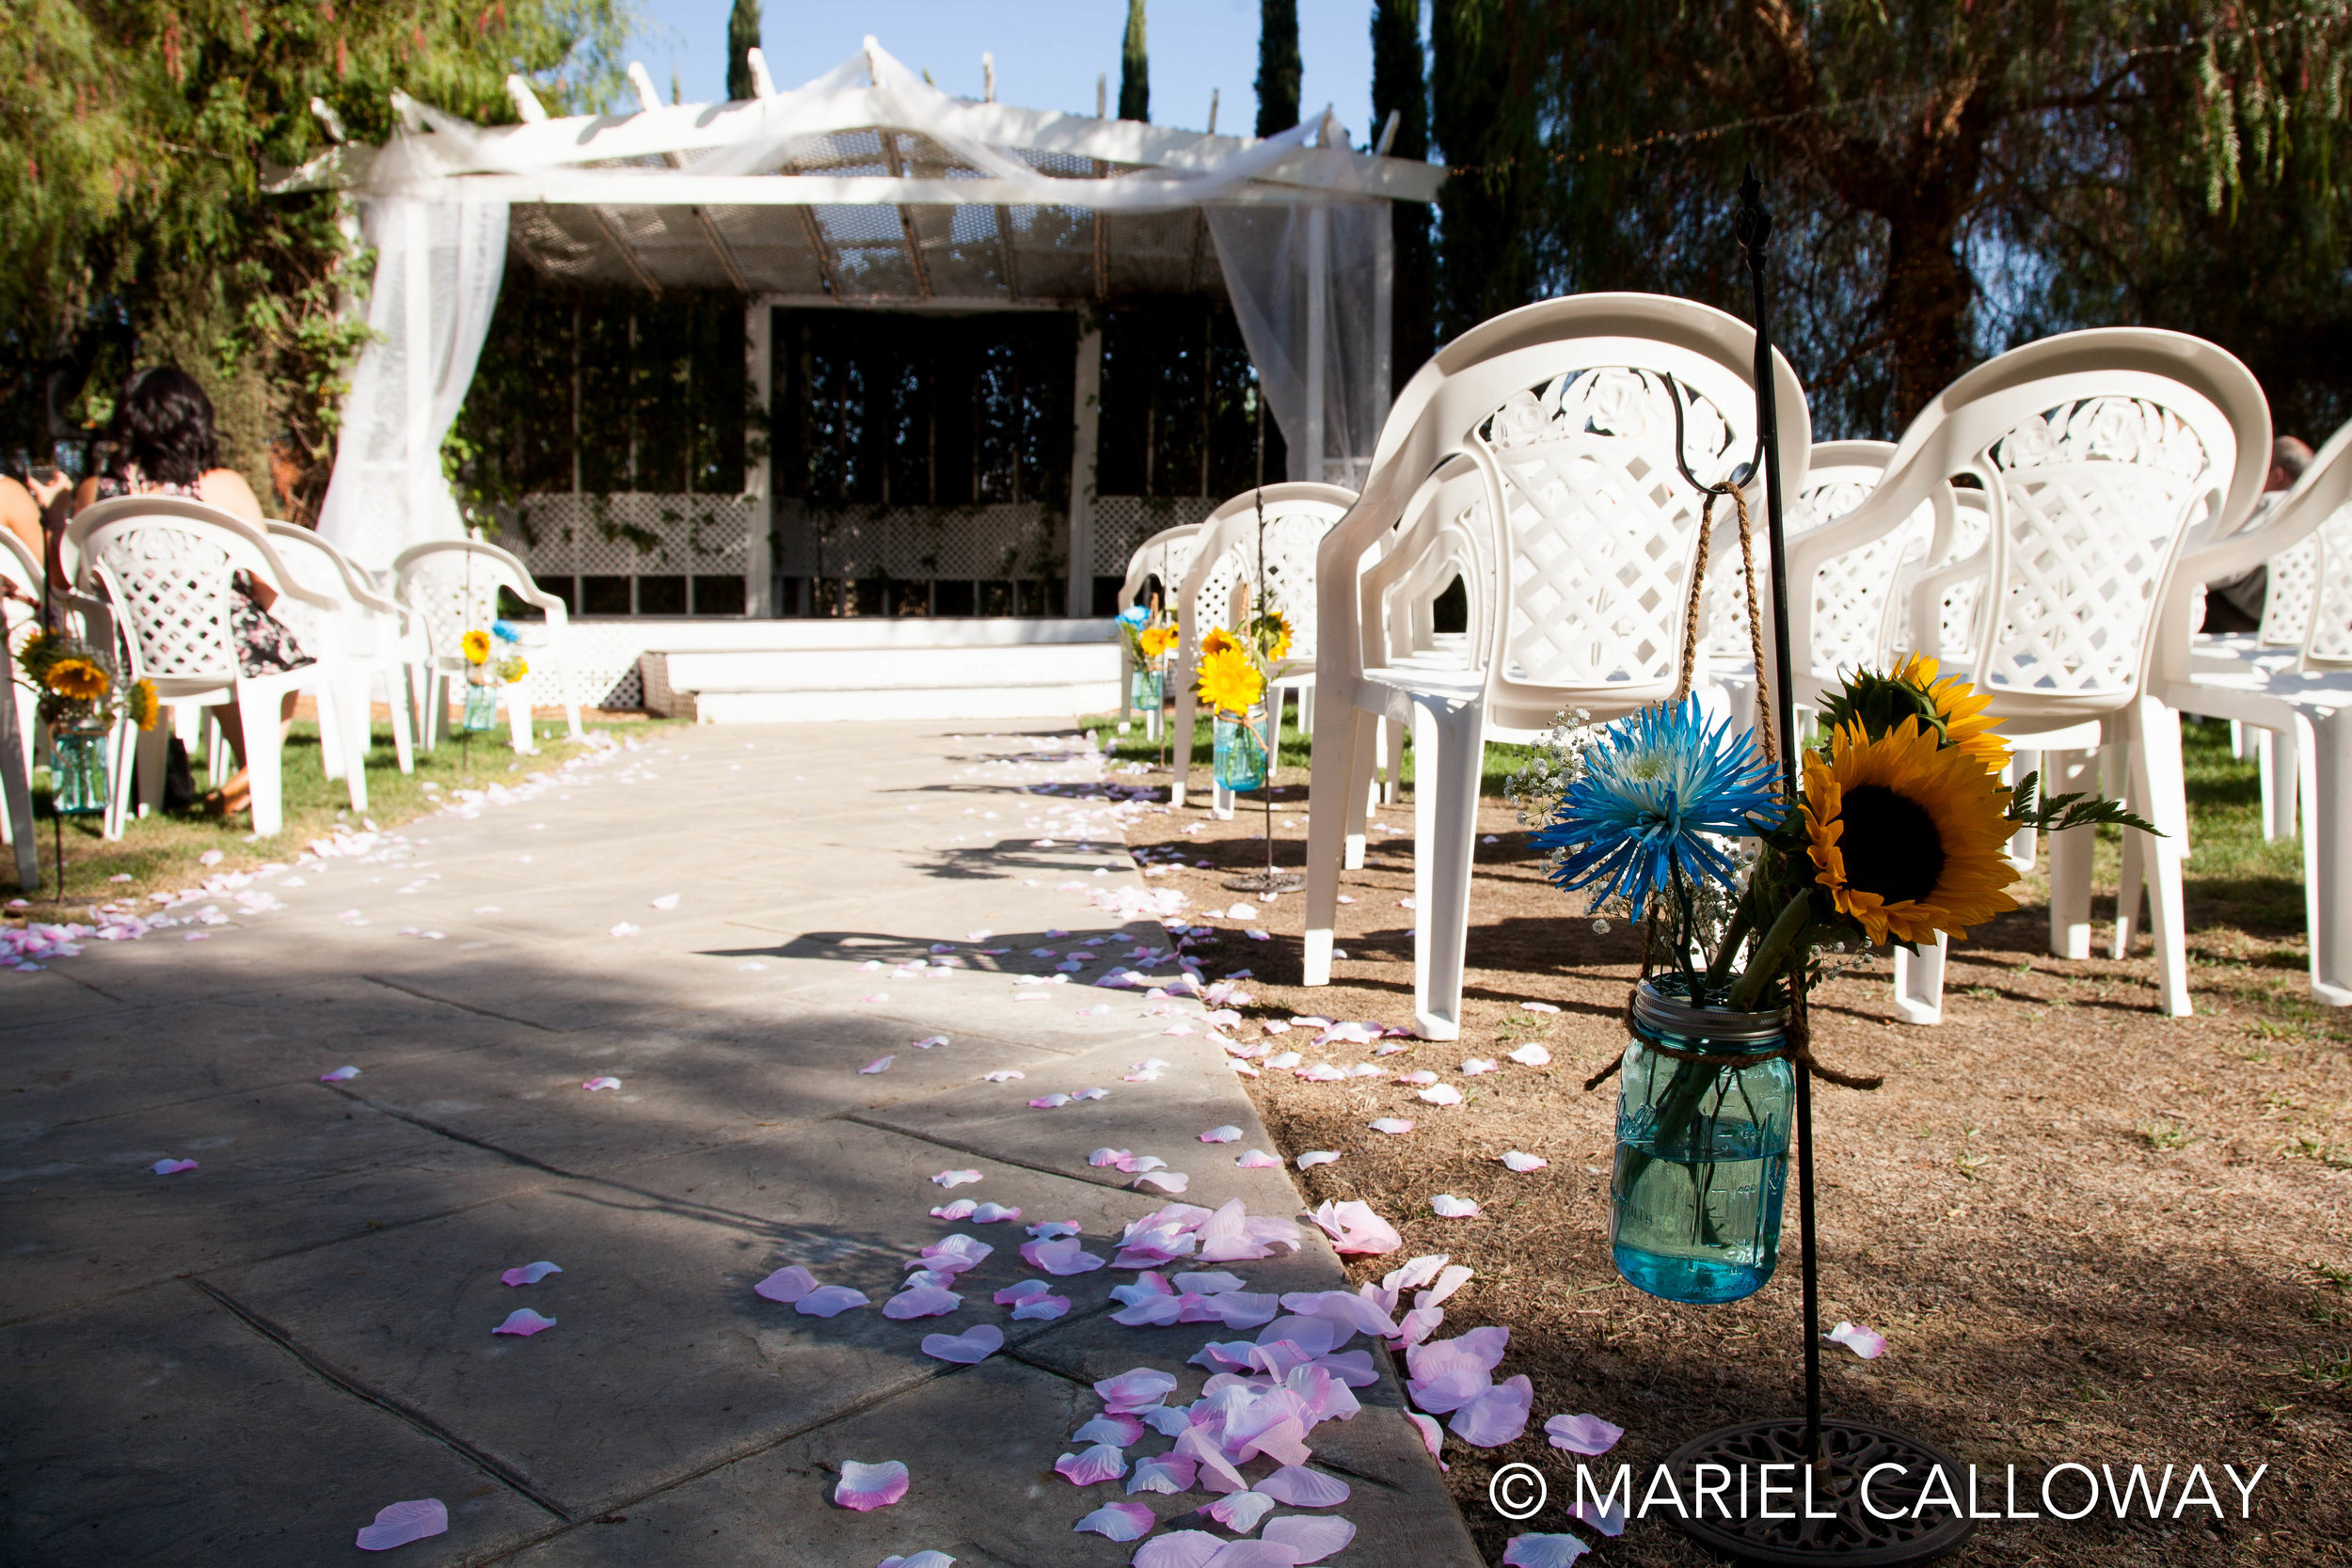 Mariel-Calloway-Wedding-Photographer-Los-Angeles-NatRory-9.jpg